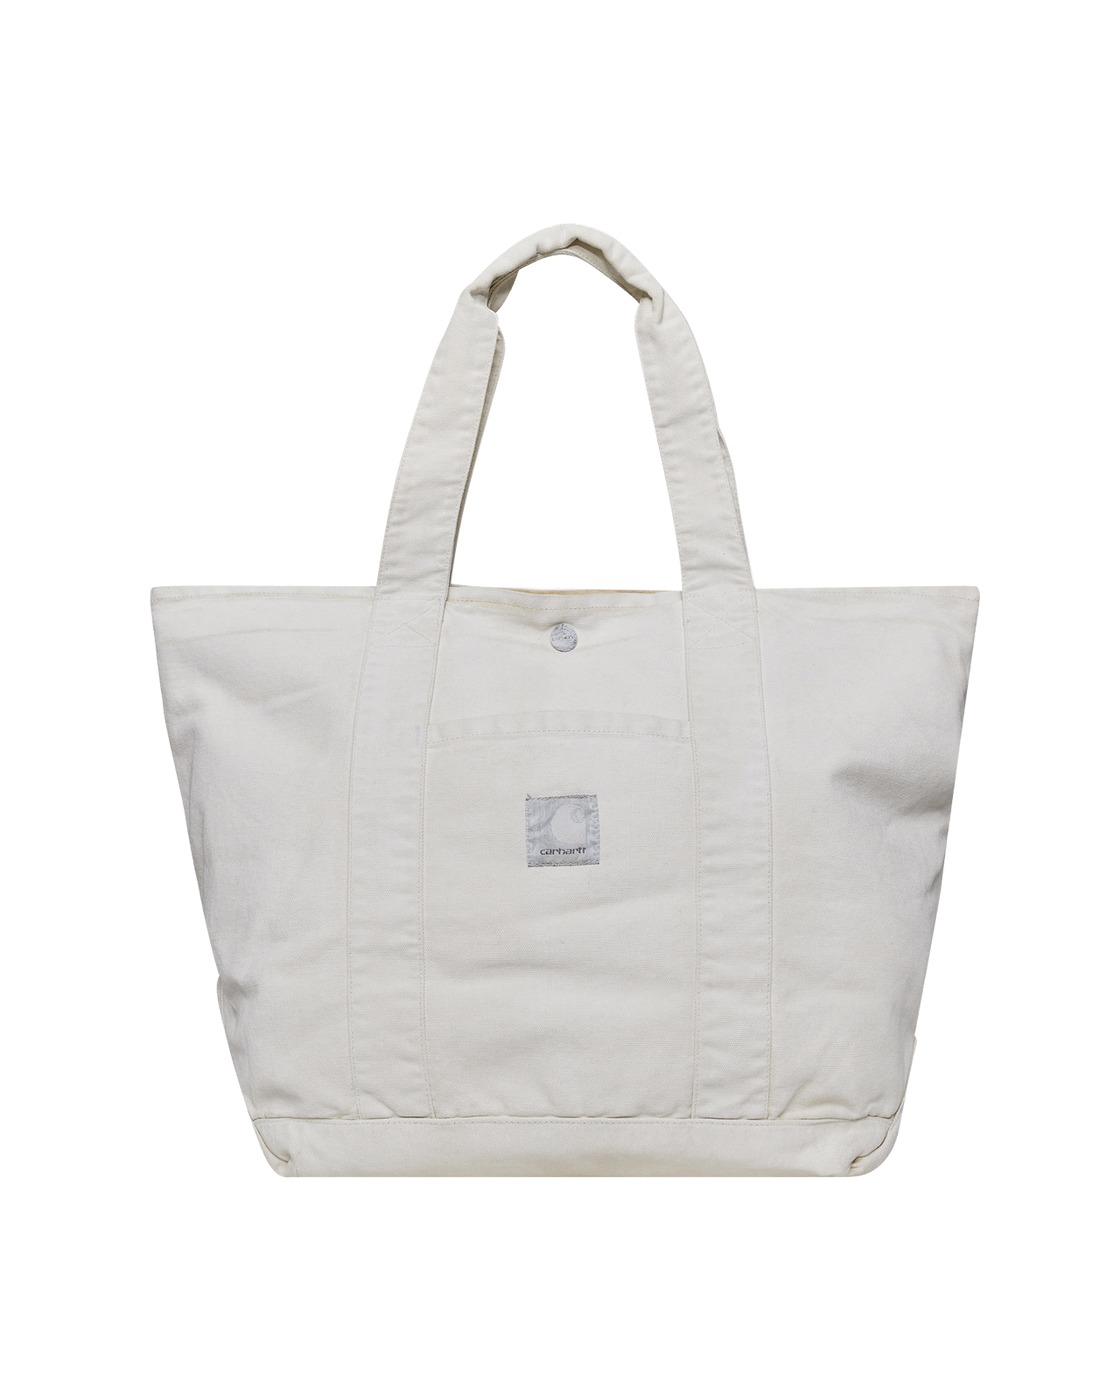 Photo: Carhartt X Slam Jam Slam Jam Simple Tote Bag Putty Paris